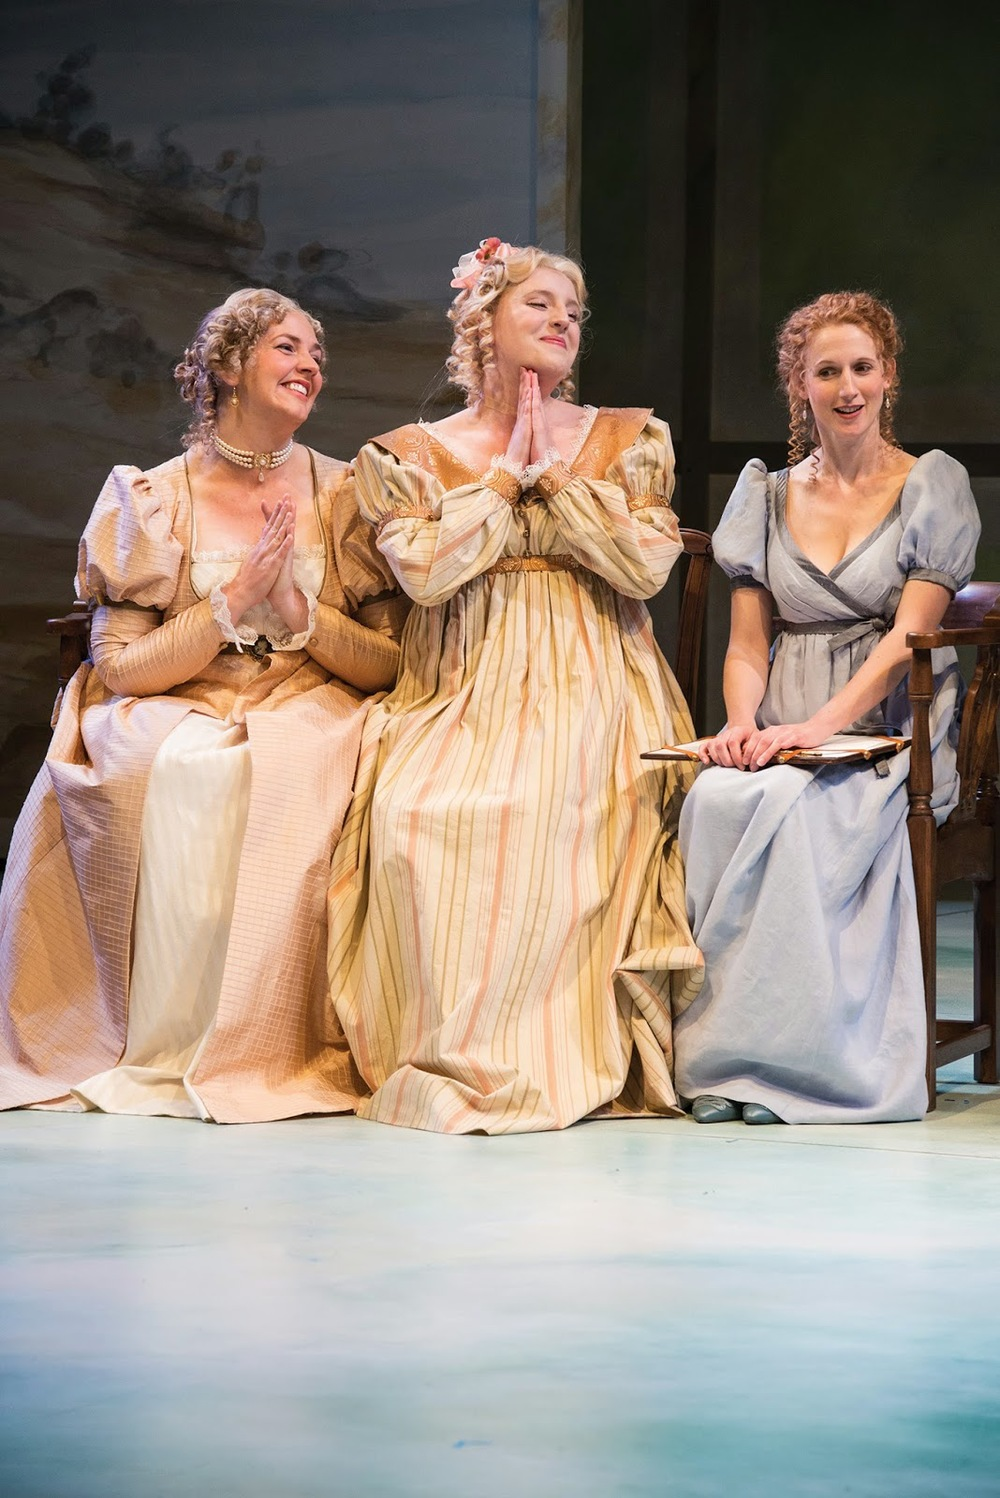 Sarah Greenman (Left), Bri Sudia, Cassandra Bissell in Sense and Sensibility. Photo by Karl Hugh.